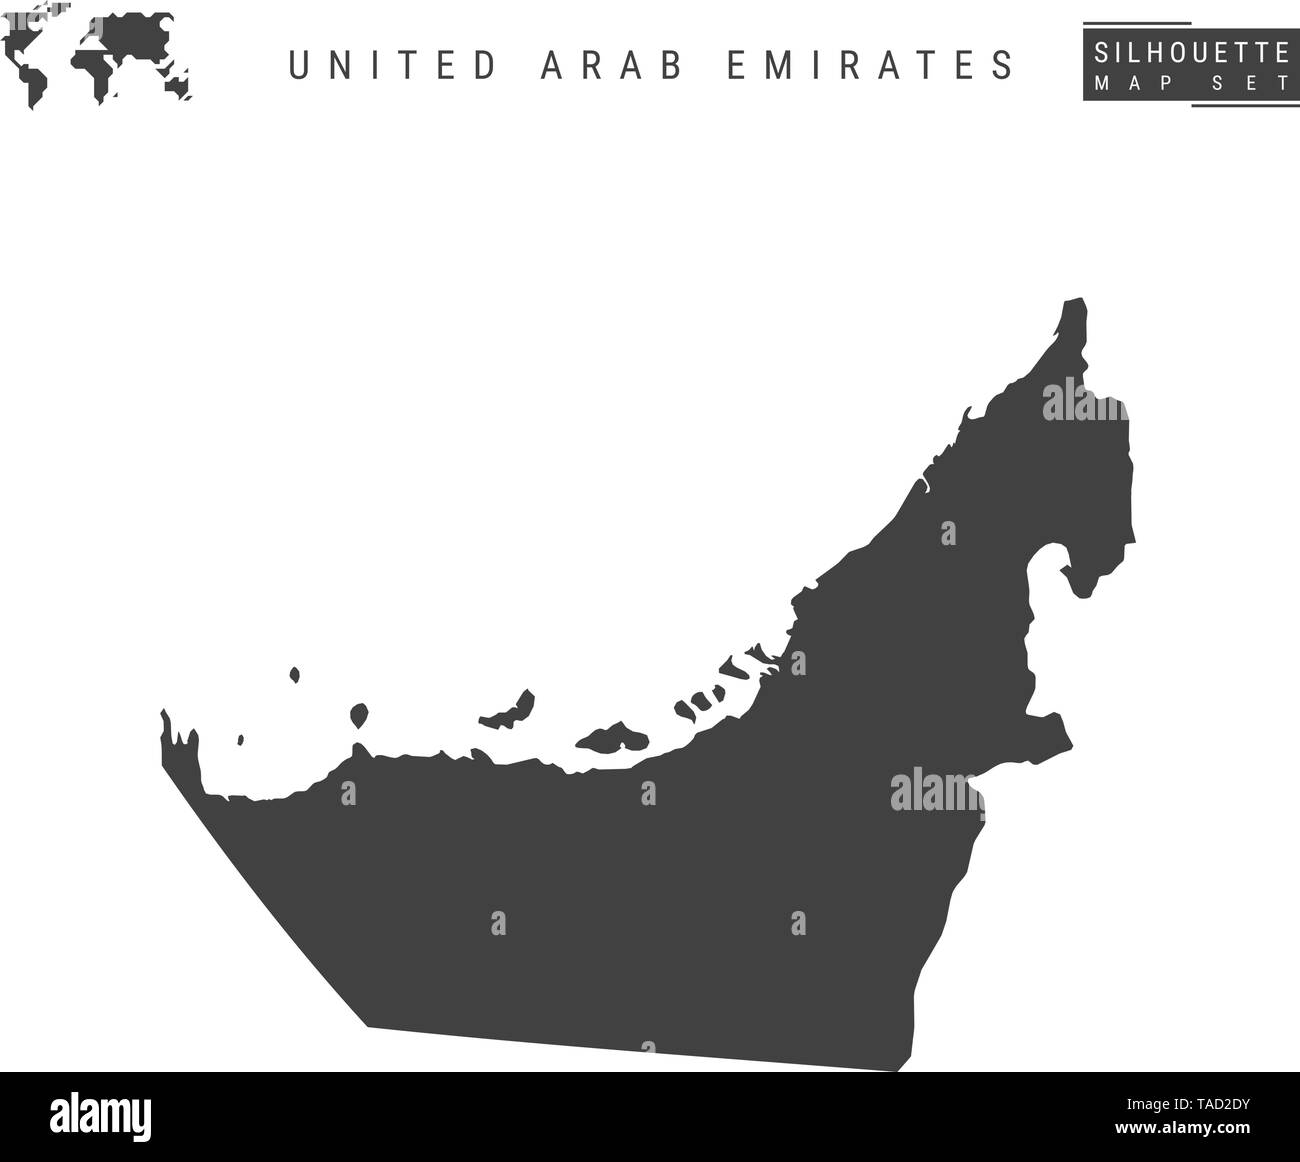 Map Of Uae Stock Photos & Map Of Uae Stock Images - Alamy